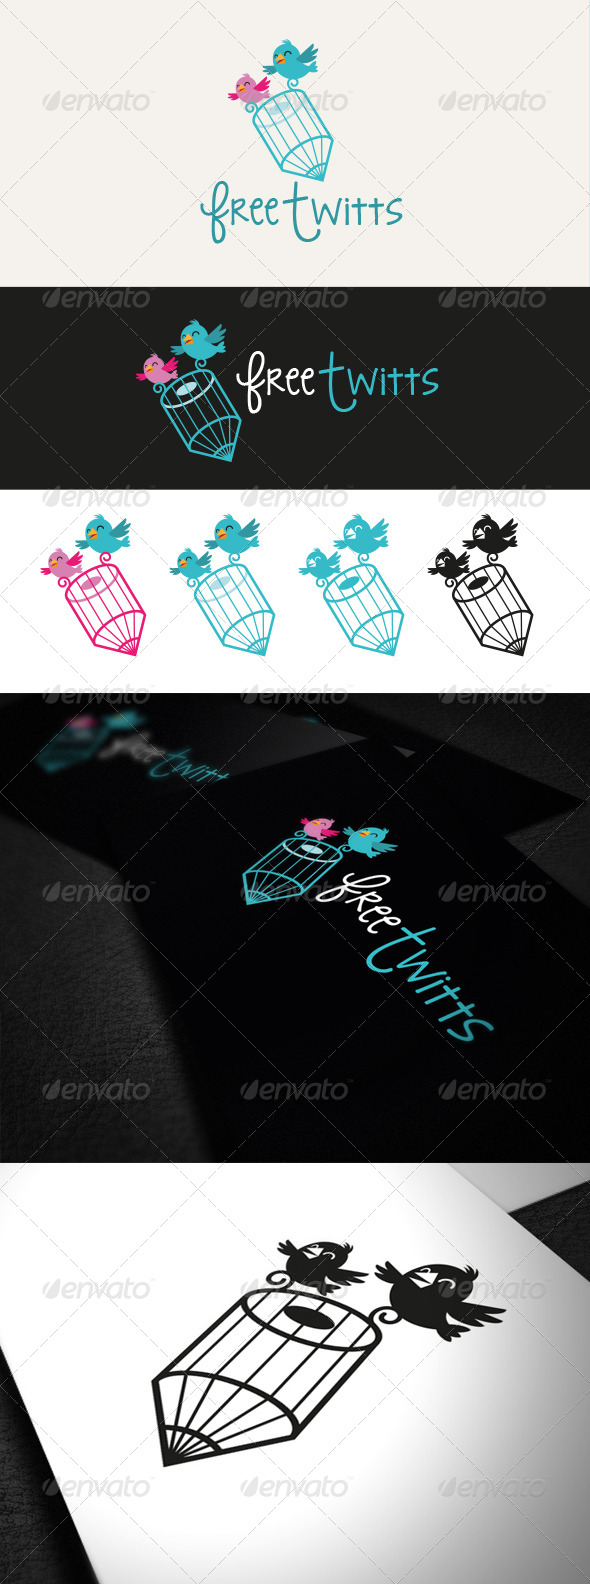 GraphicRiver Free Twitts 5542129